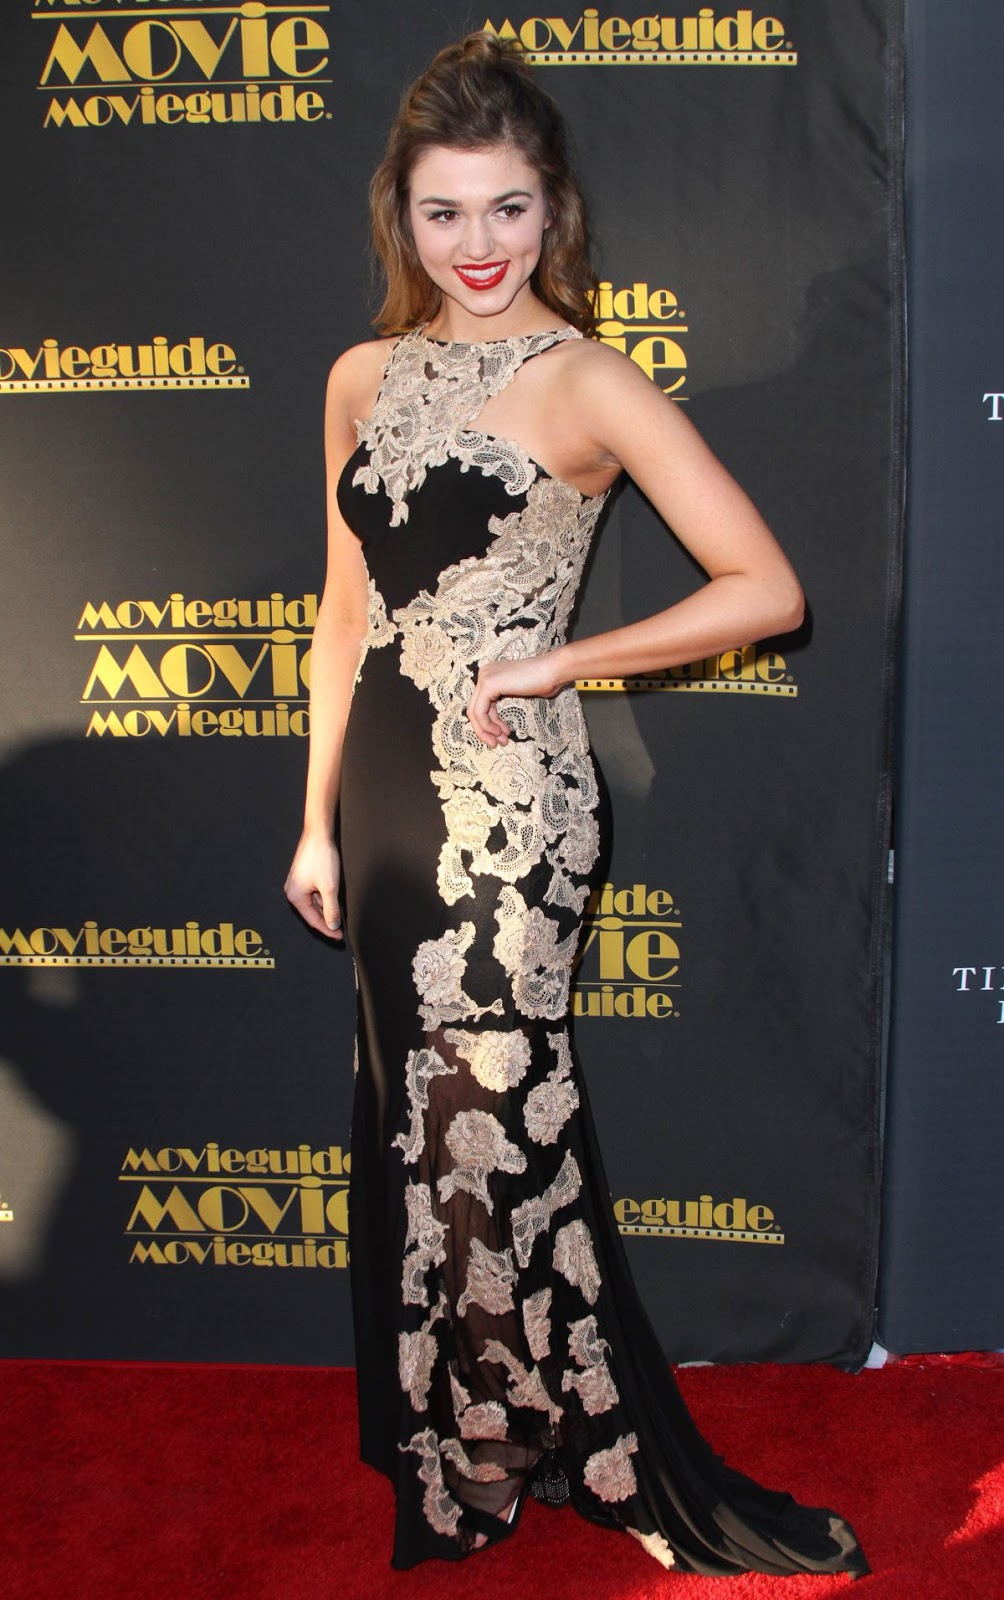 Sadie Robertson Photos - 24th Annual Movie Guide Awards 2016 in Los Angeles